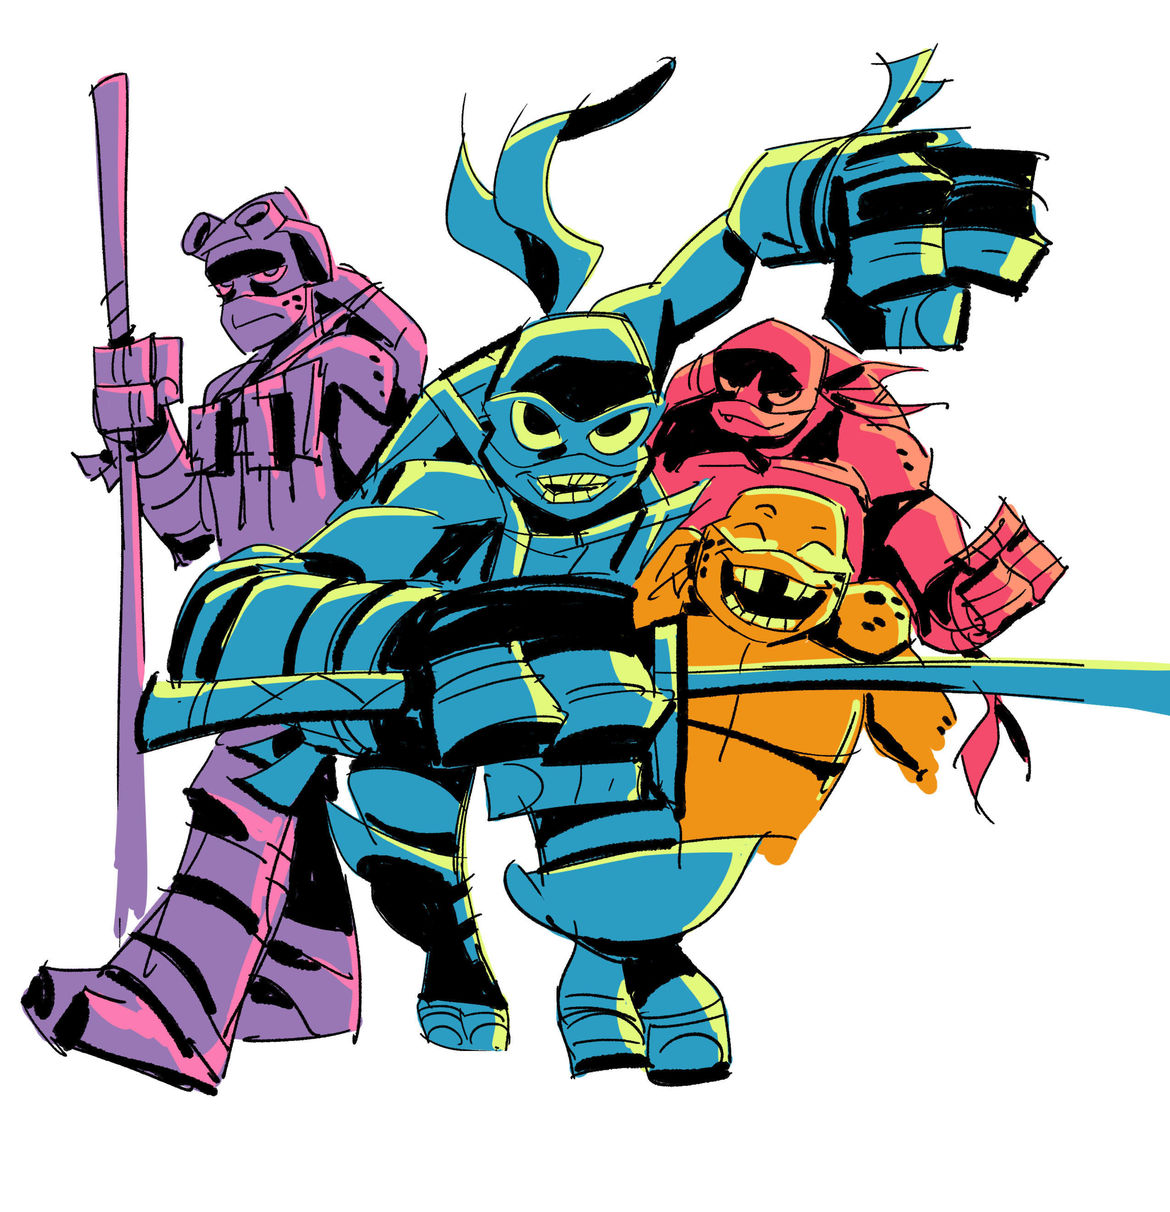 TMNT_ReLaunch_Ideas_9.7.16_groupRUFF_1